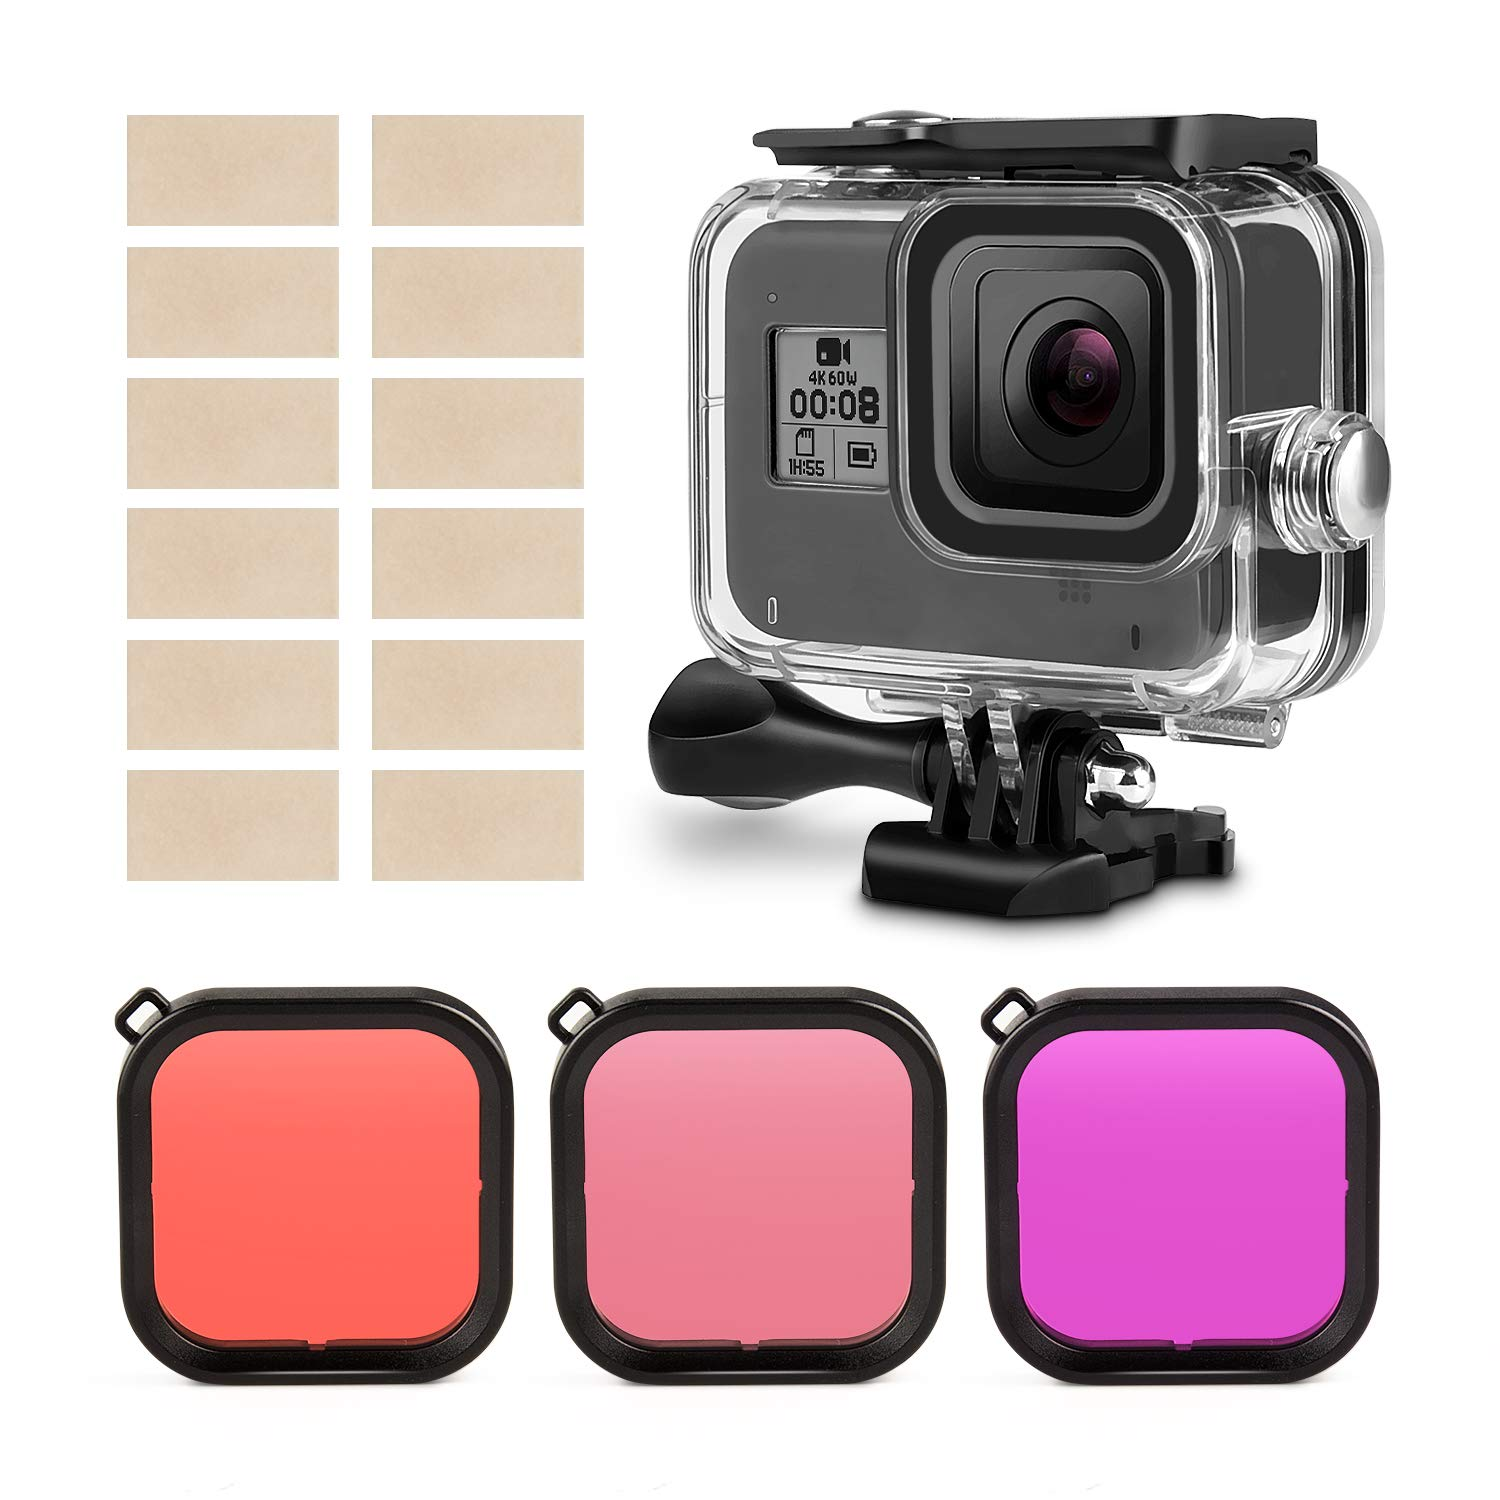 Head Chest Strap Floating Grip Silicone Sleeve Filters Waterproof Housing Case Bicycle Mount Suction Cup Mount Kupton Accessories Kit for GoPro Hero 8 Action Camera Accessory Bundle Set